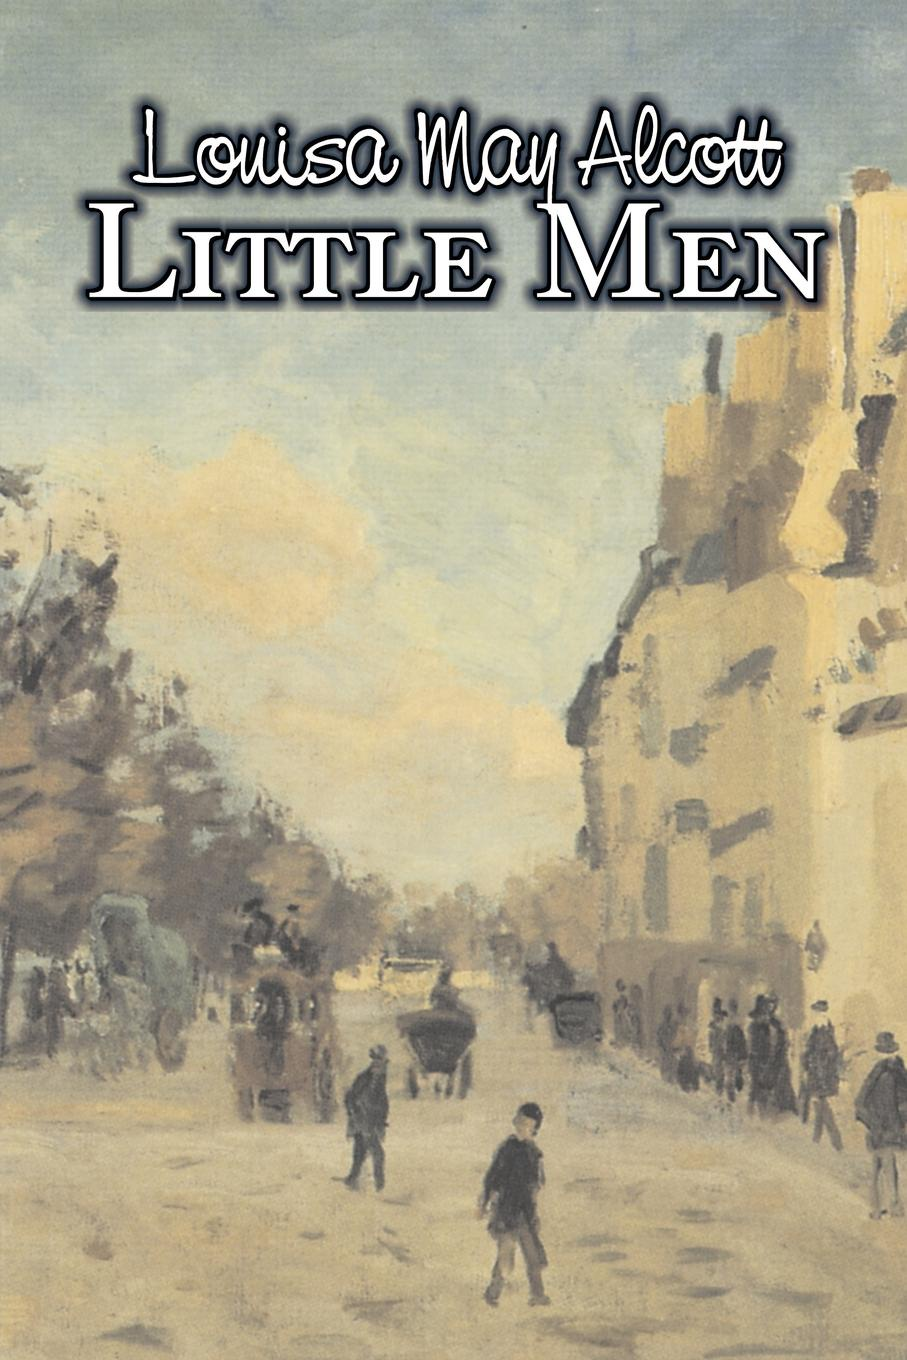 Louisa May Alcott Little Men by Louisa May Alcott, Fiction, Family, Classics jo leigh sexy ms takes